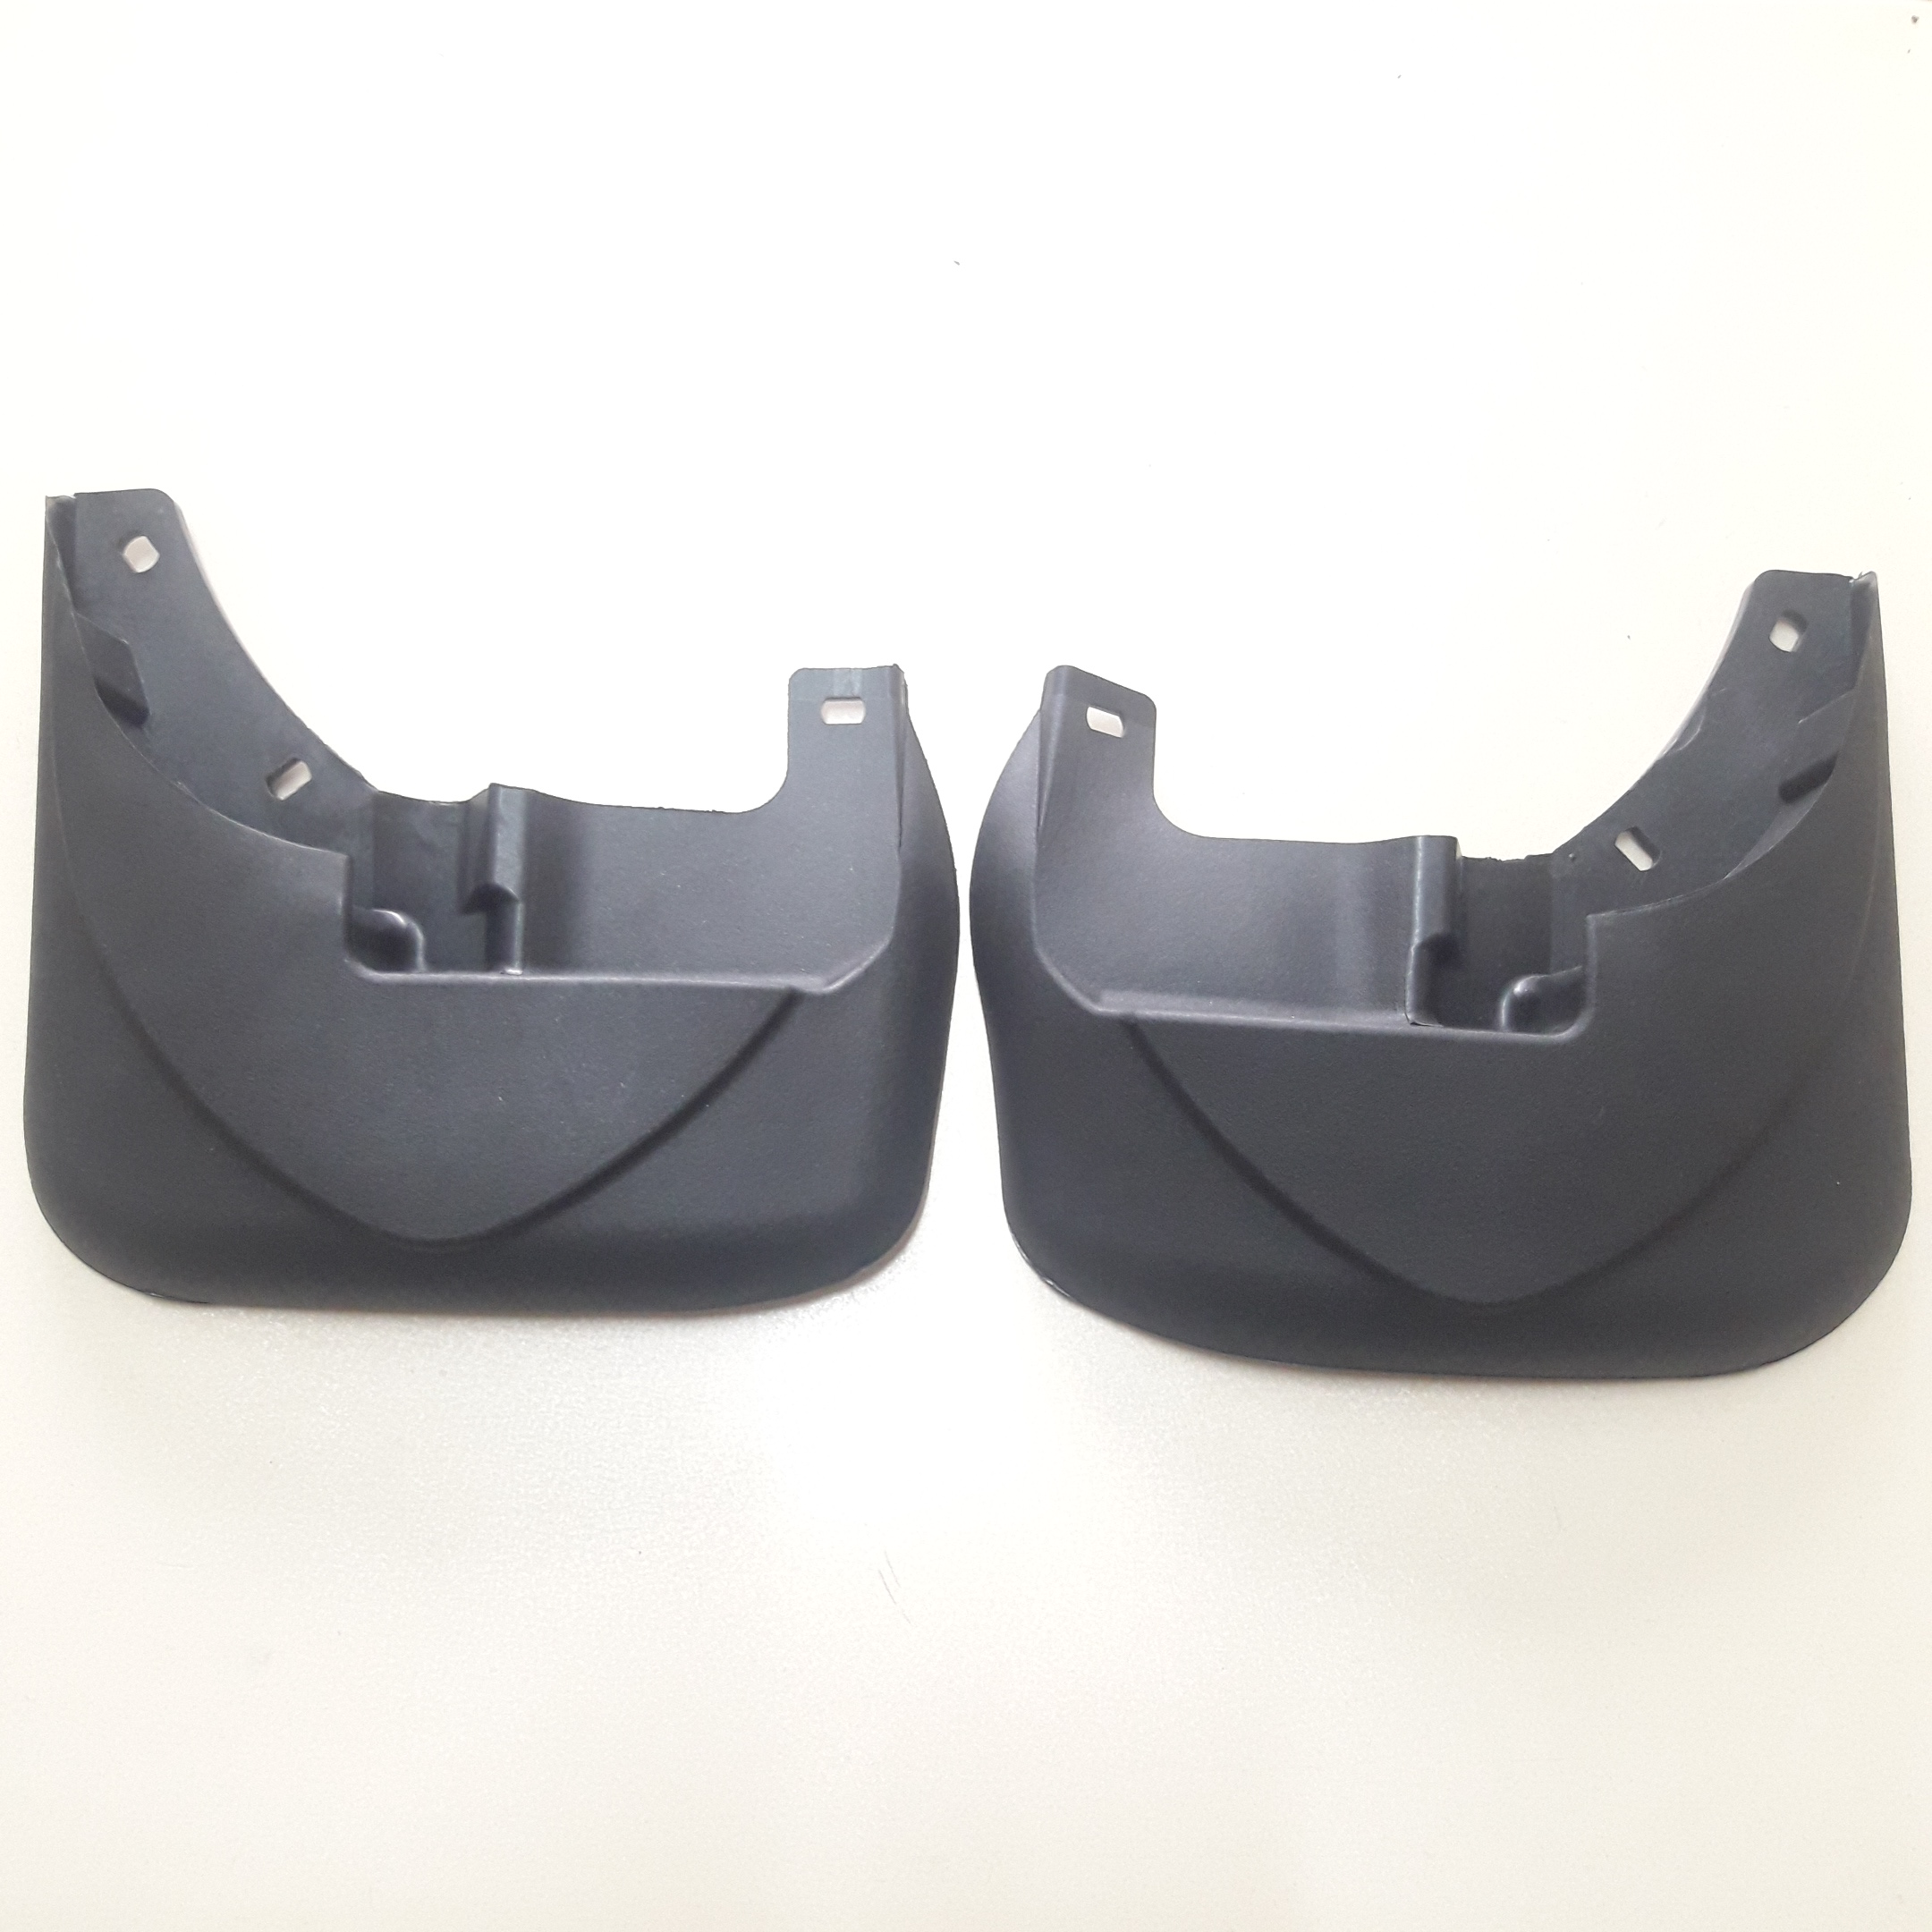 Top Quality Universal Hyundai i10 Car Rubber Moulded MUDFLAPS Full set